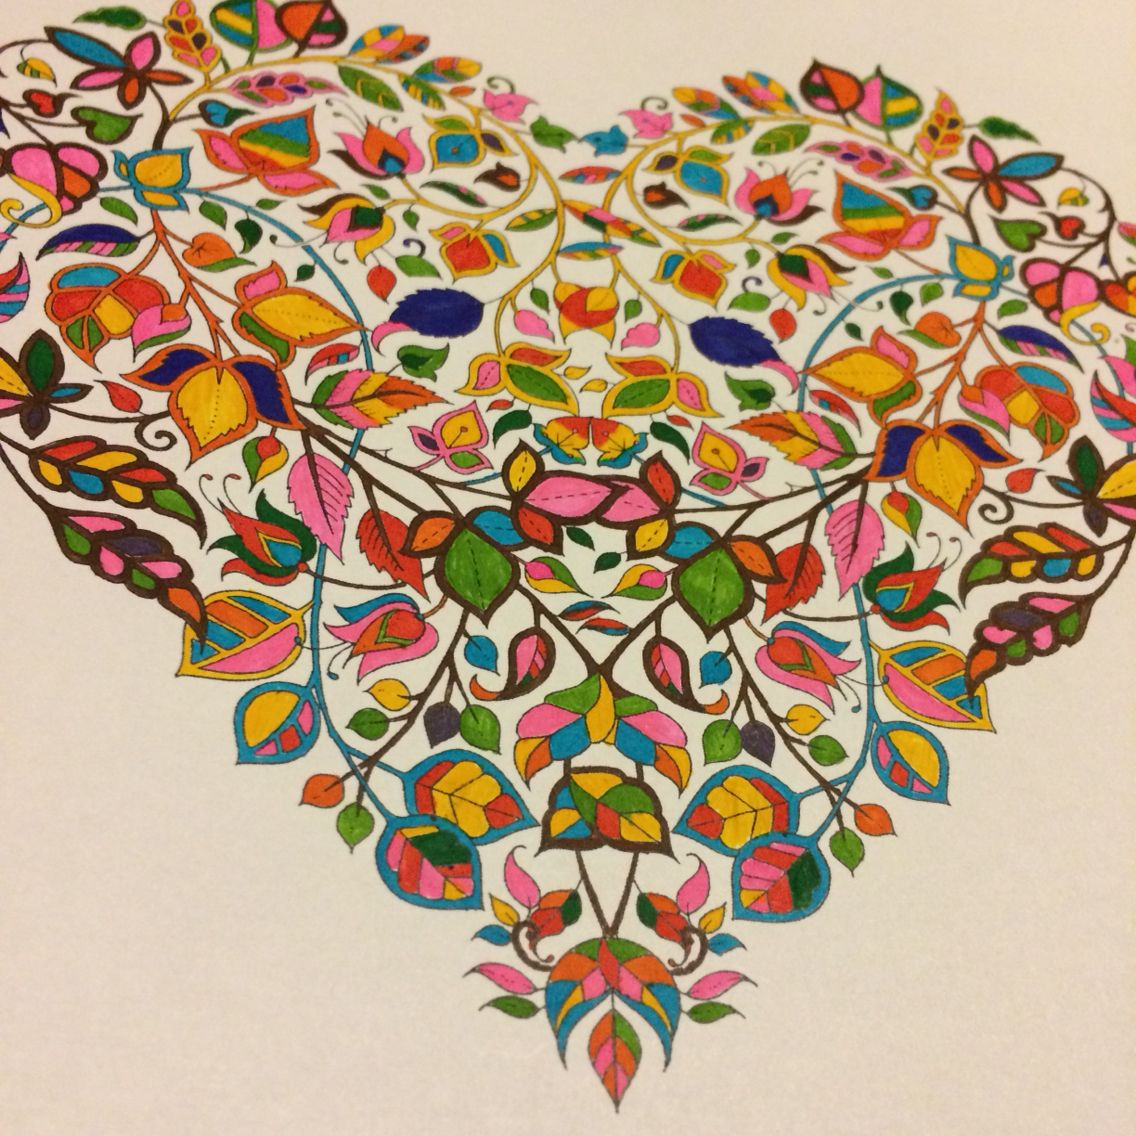 Colorful Heart Free Download From Johanna Basford Website The